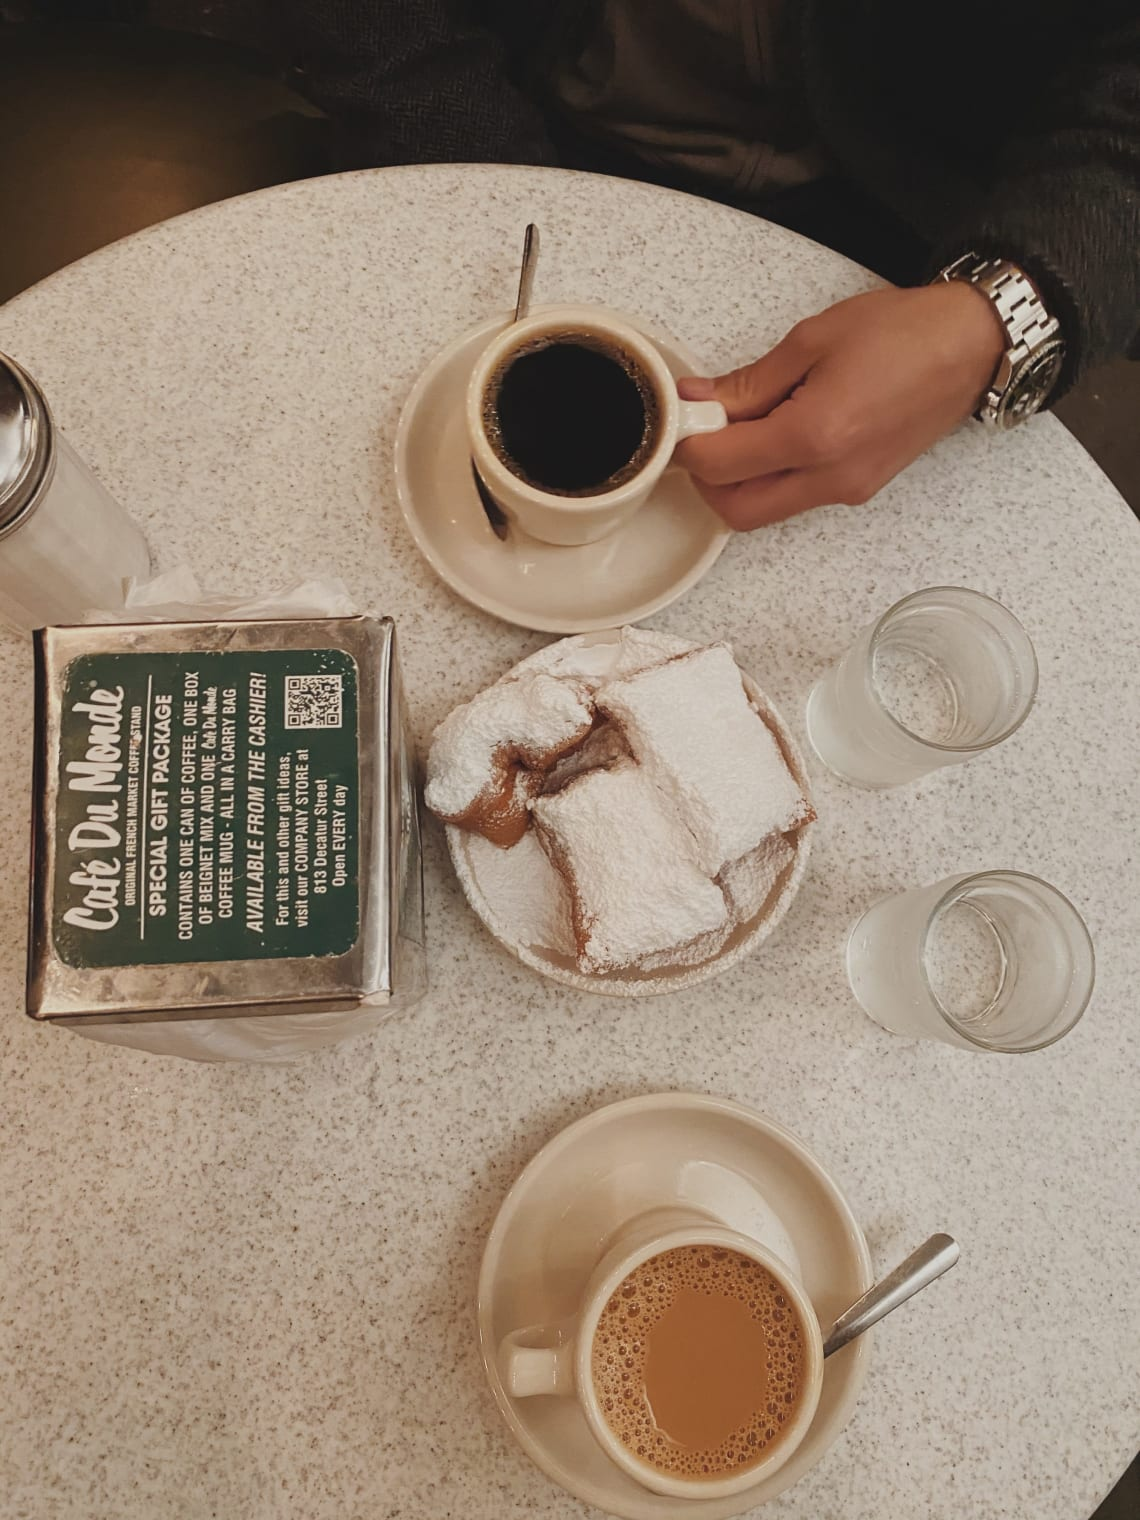 Things to do in New Orleans during Mardi Gras: stop by Cafe du Monde